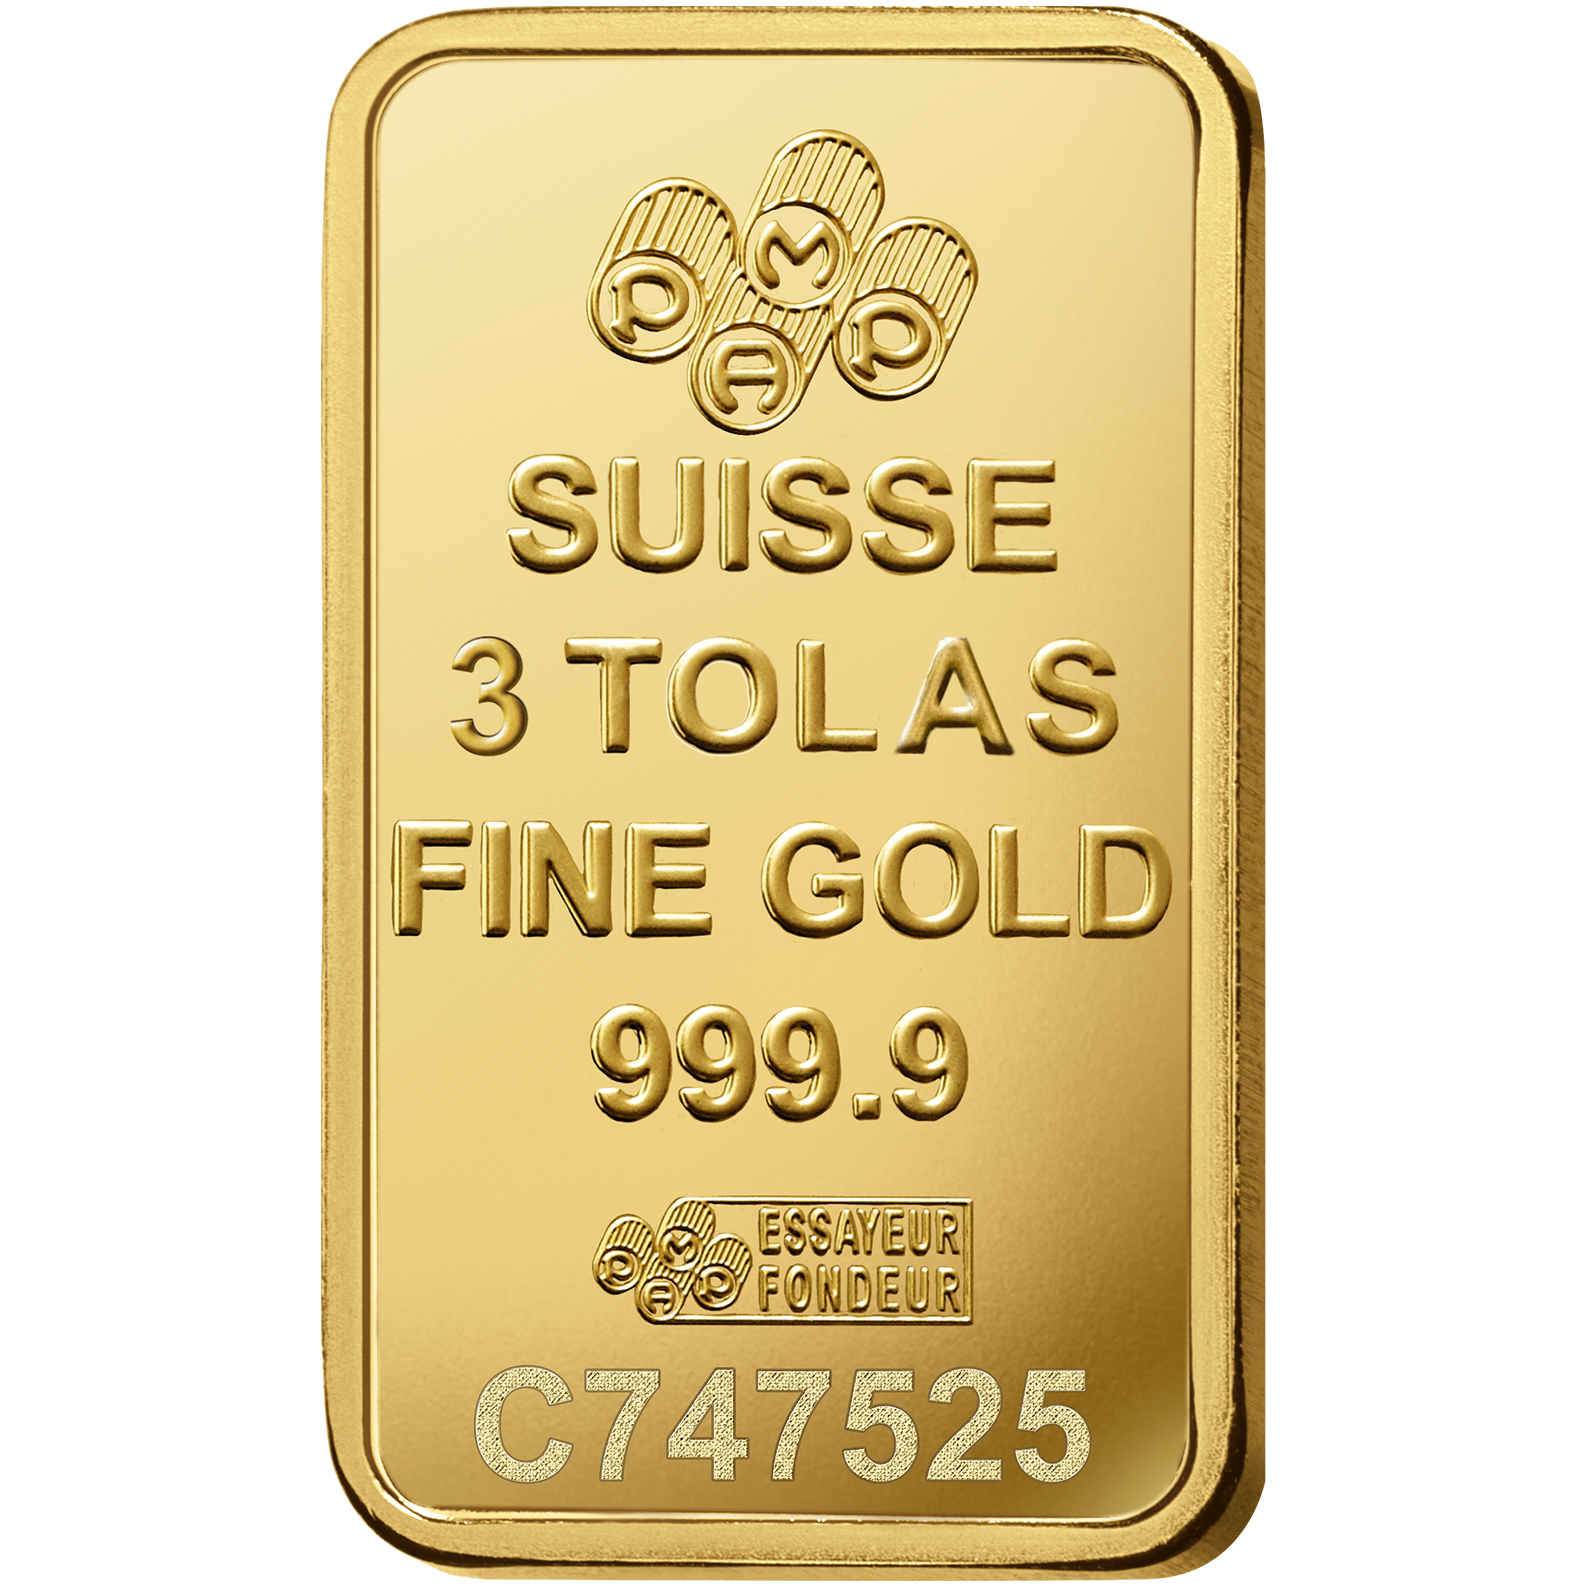 3 tolas lingotin d'or pur 999.9 - PAMP Suisse Lady Fortuna Veriscan